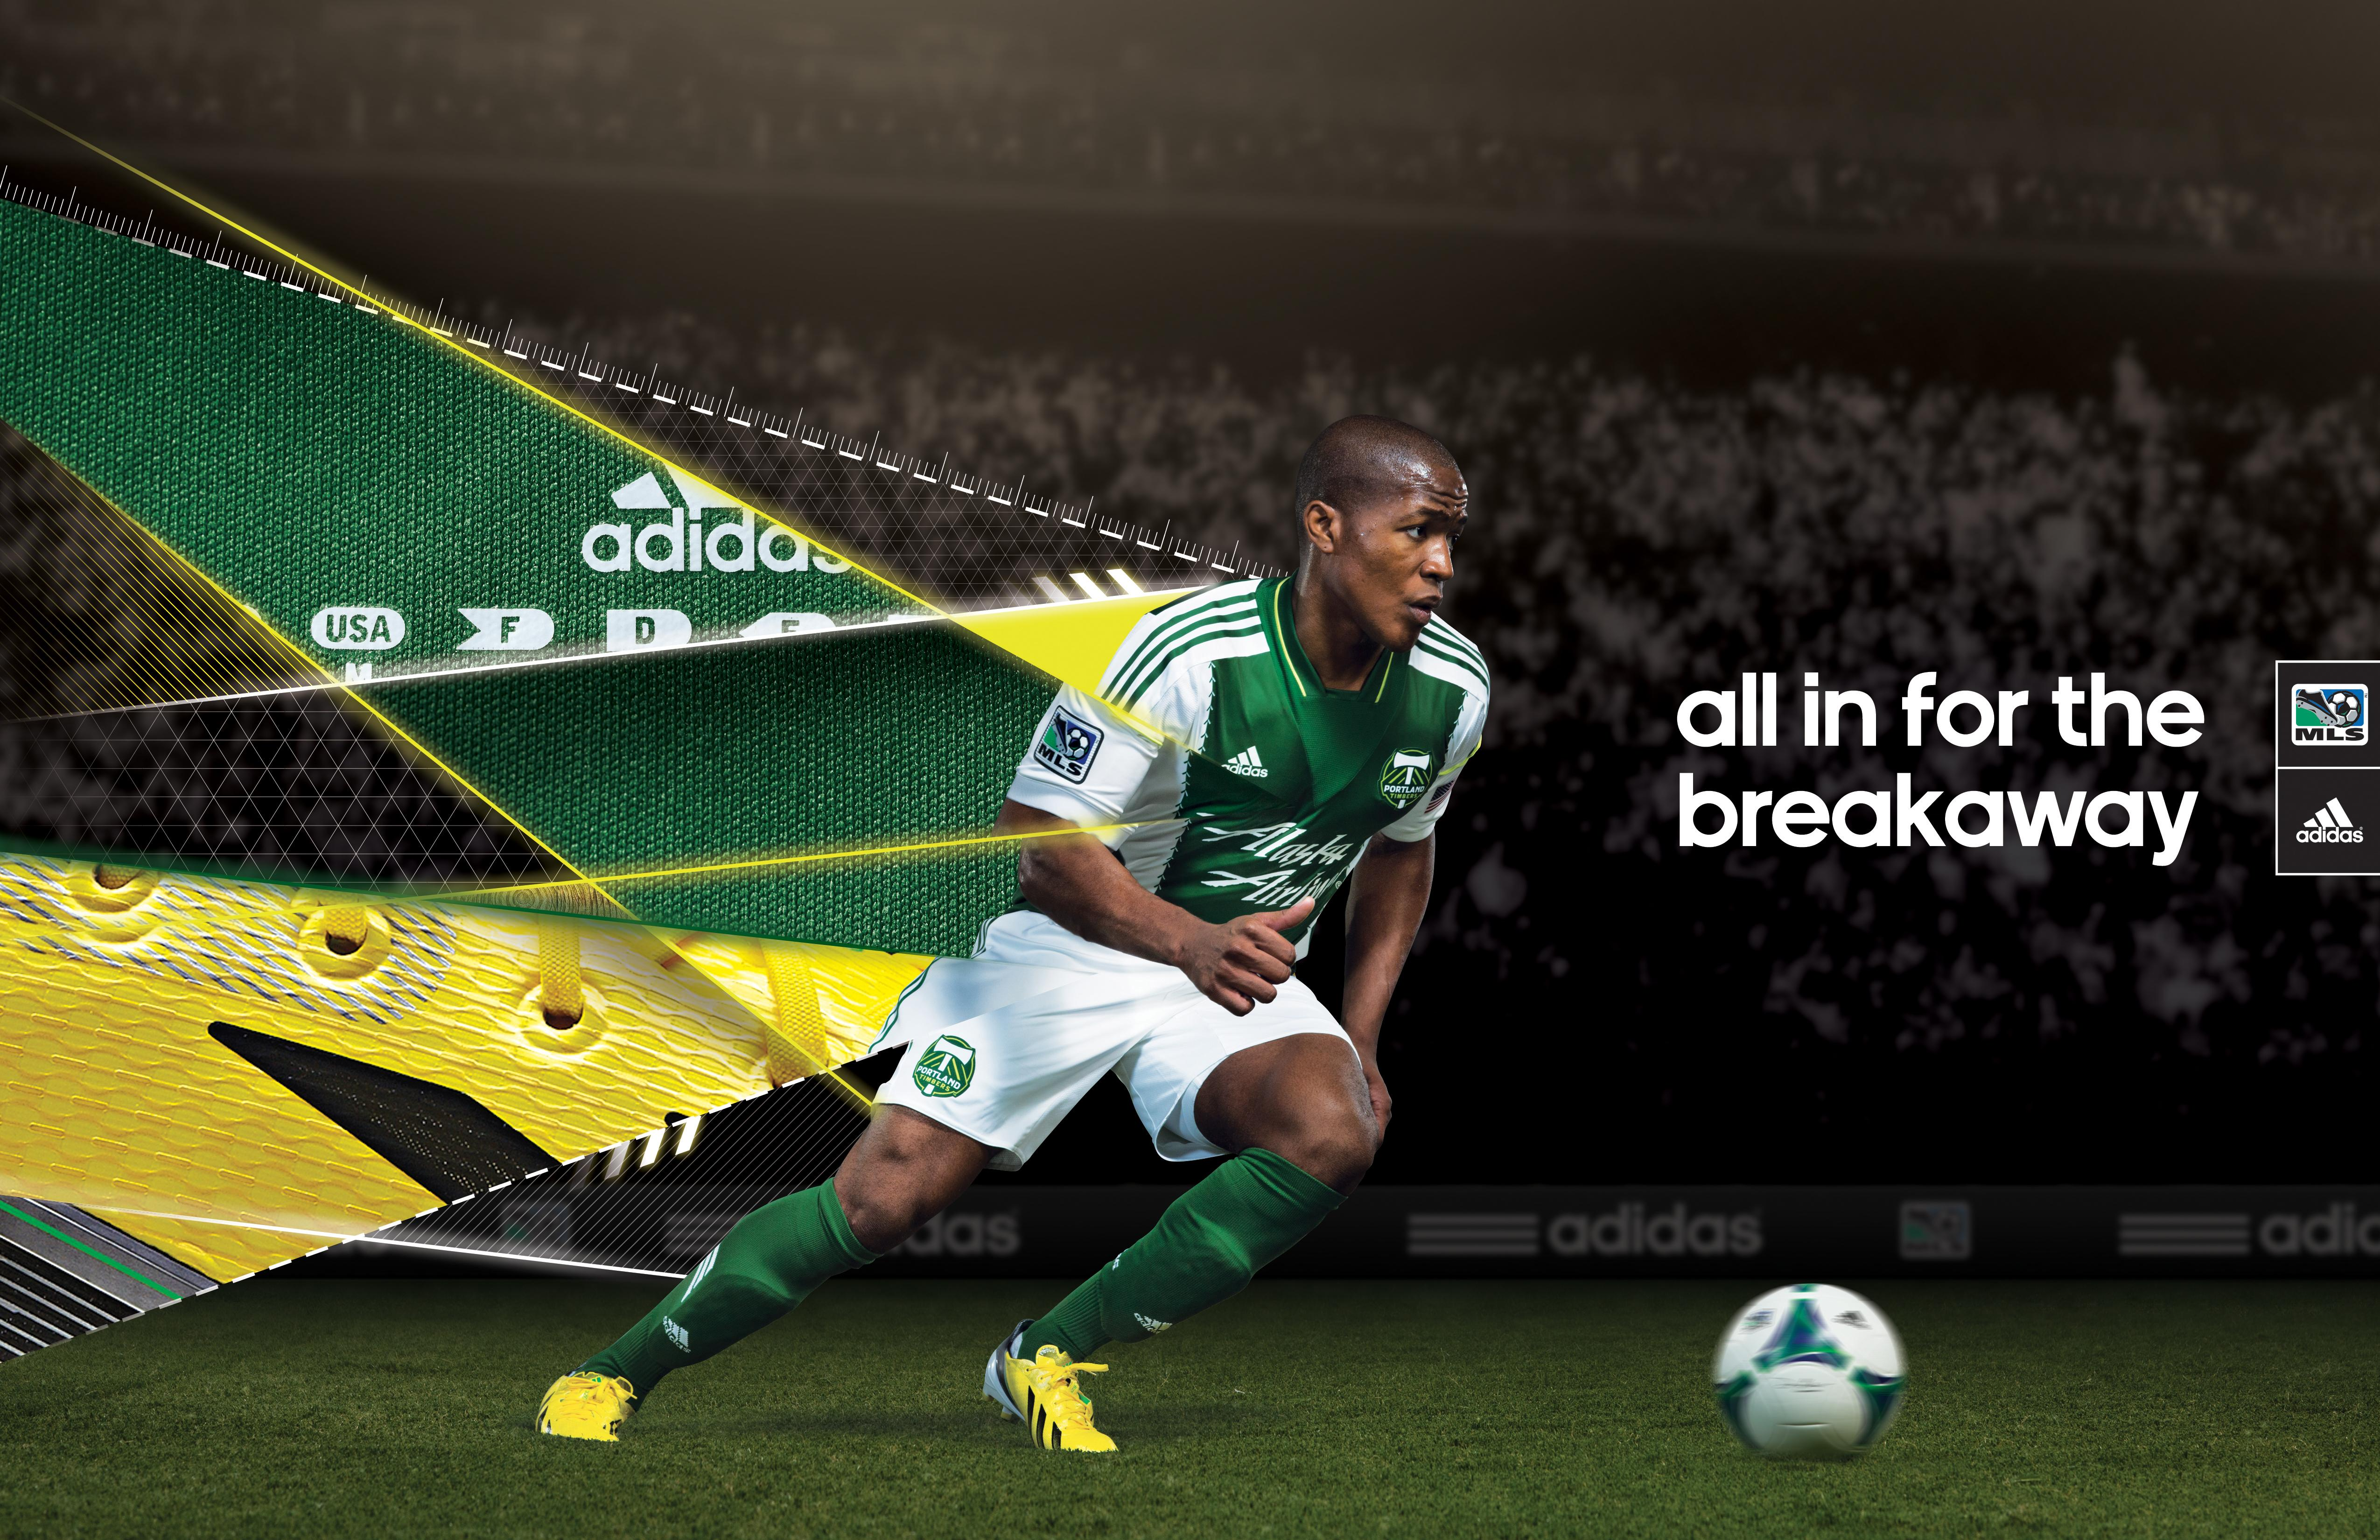 Portland Timbers MLS Adidas wallpapers 2018 in Soccer